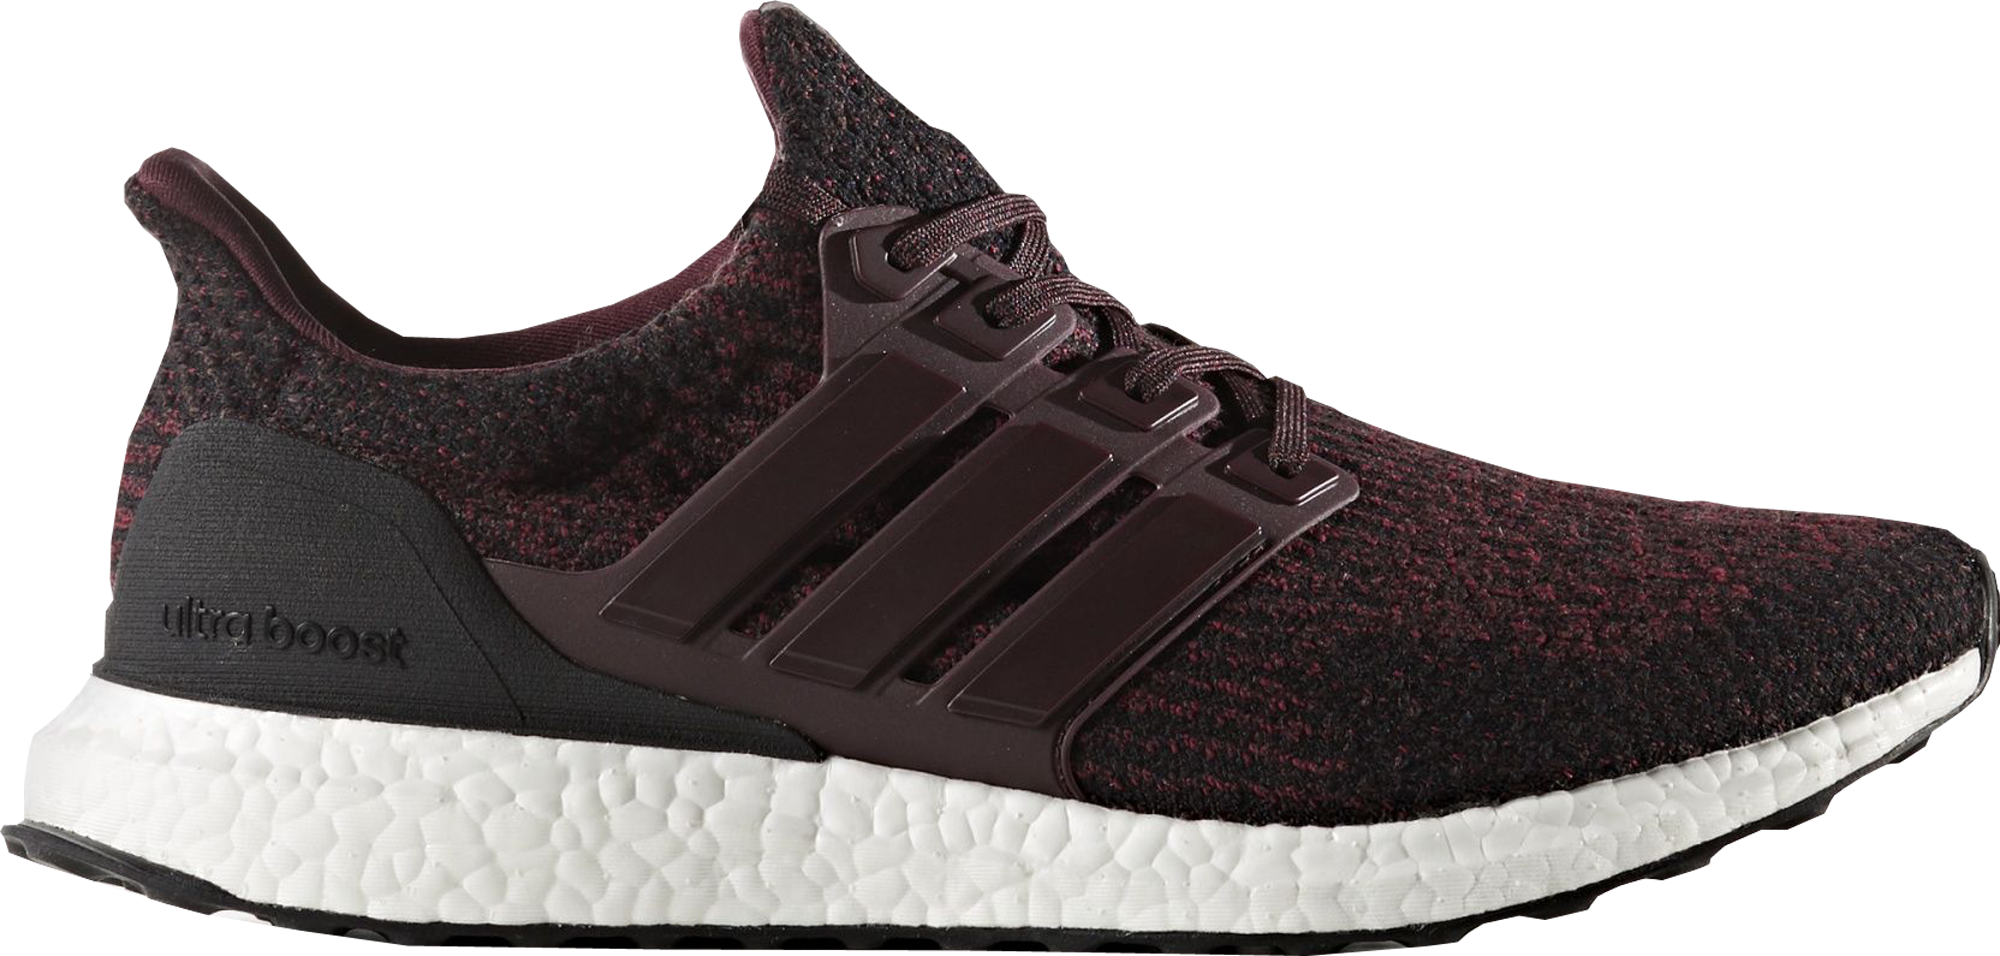 adidas Ultra Boost 3.0 Dark Burgundy